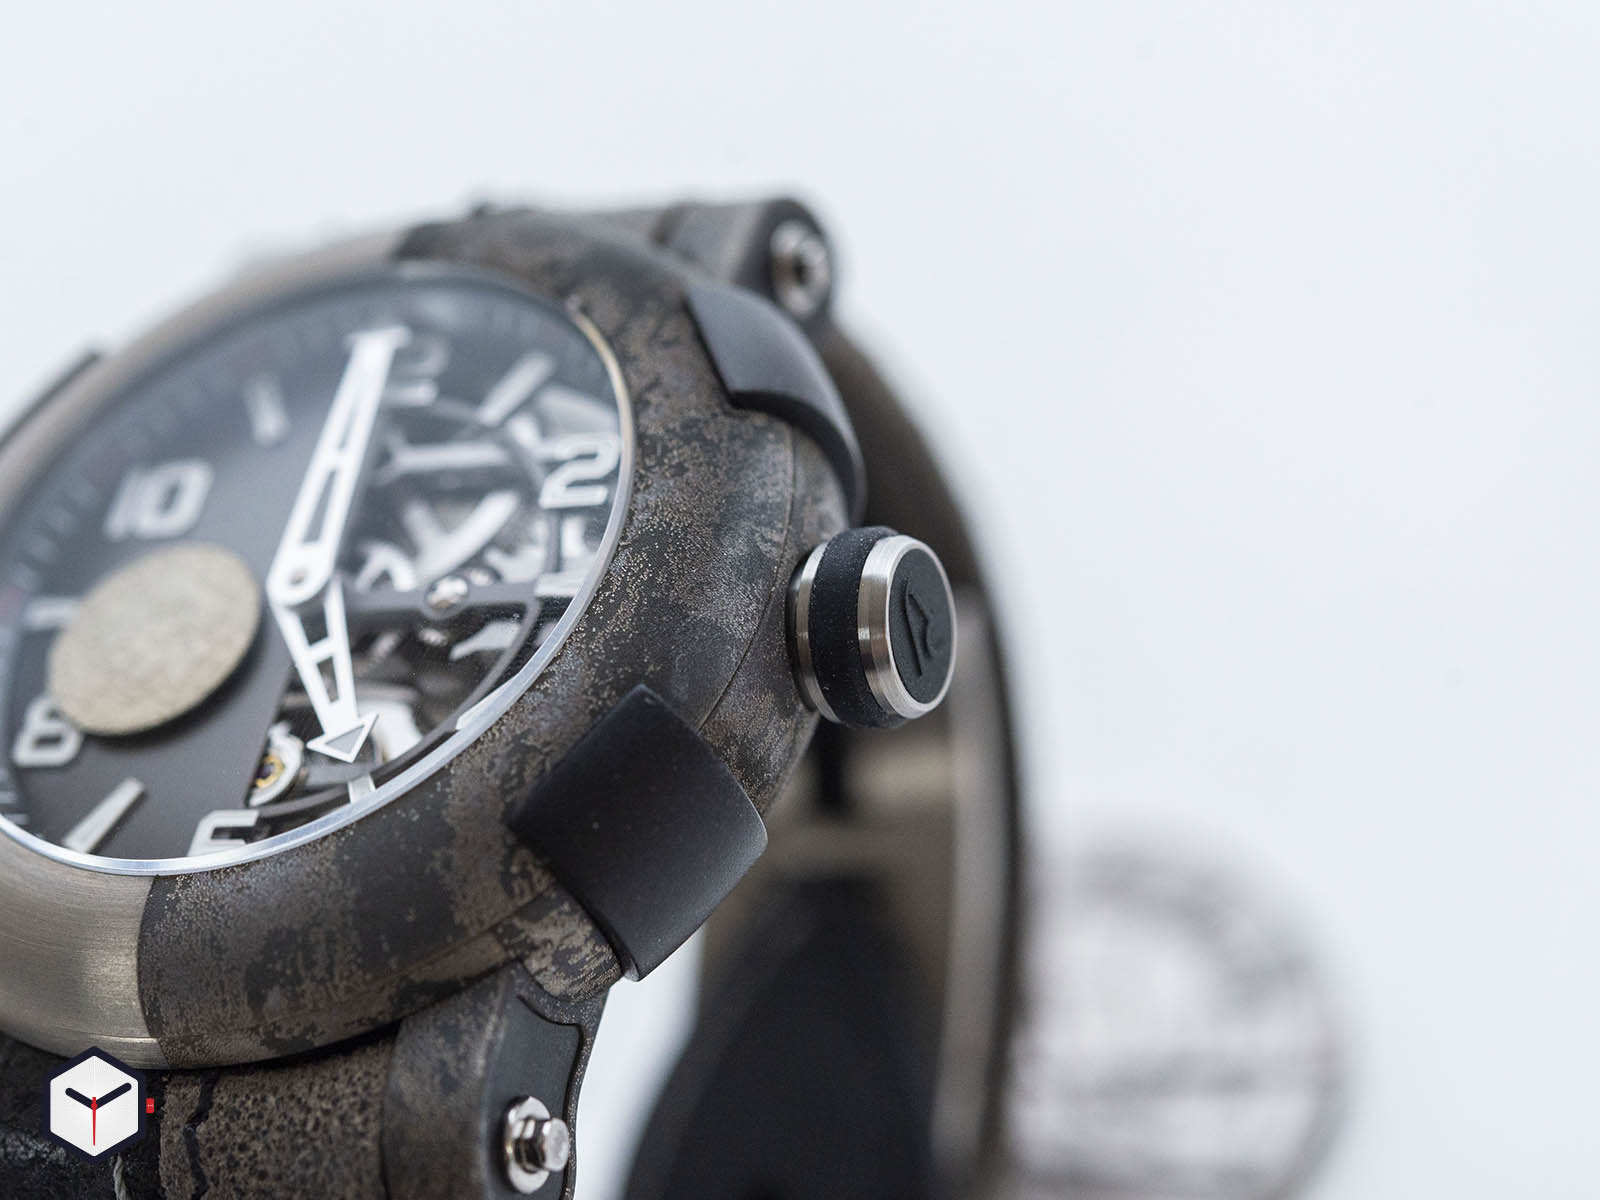 1c45s-tttr-5023-ar-twf18-romain-jerome-arraw-two-face-sihh-2019-5.jpg